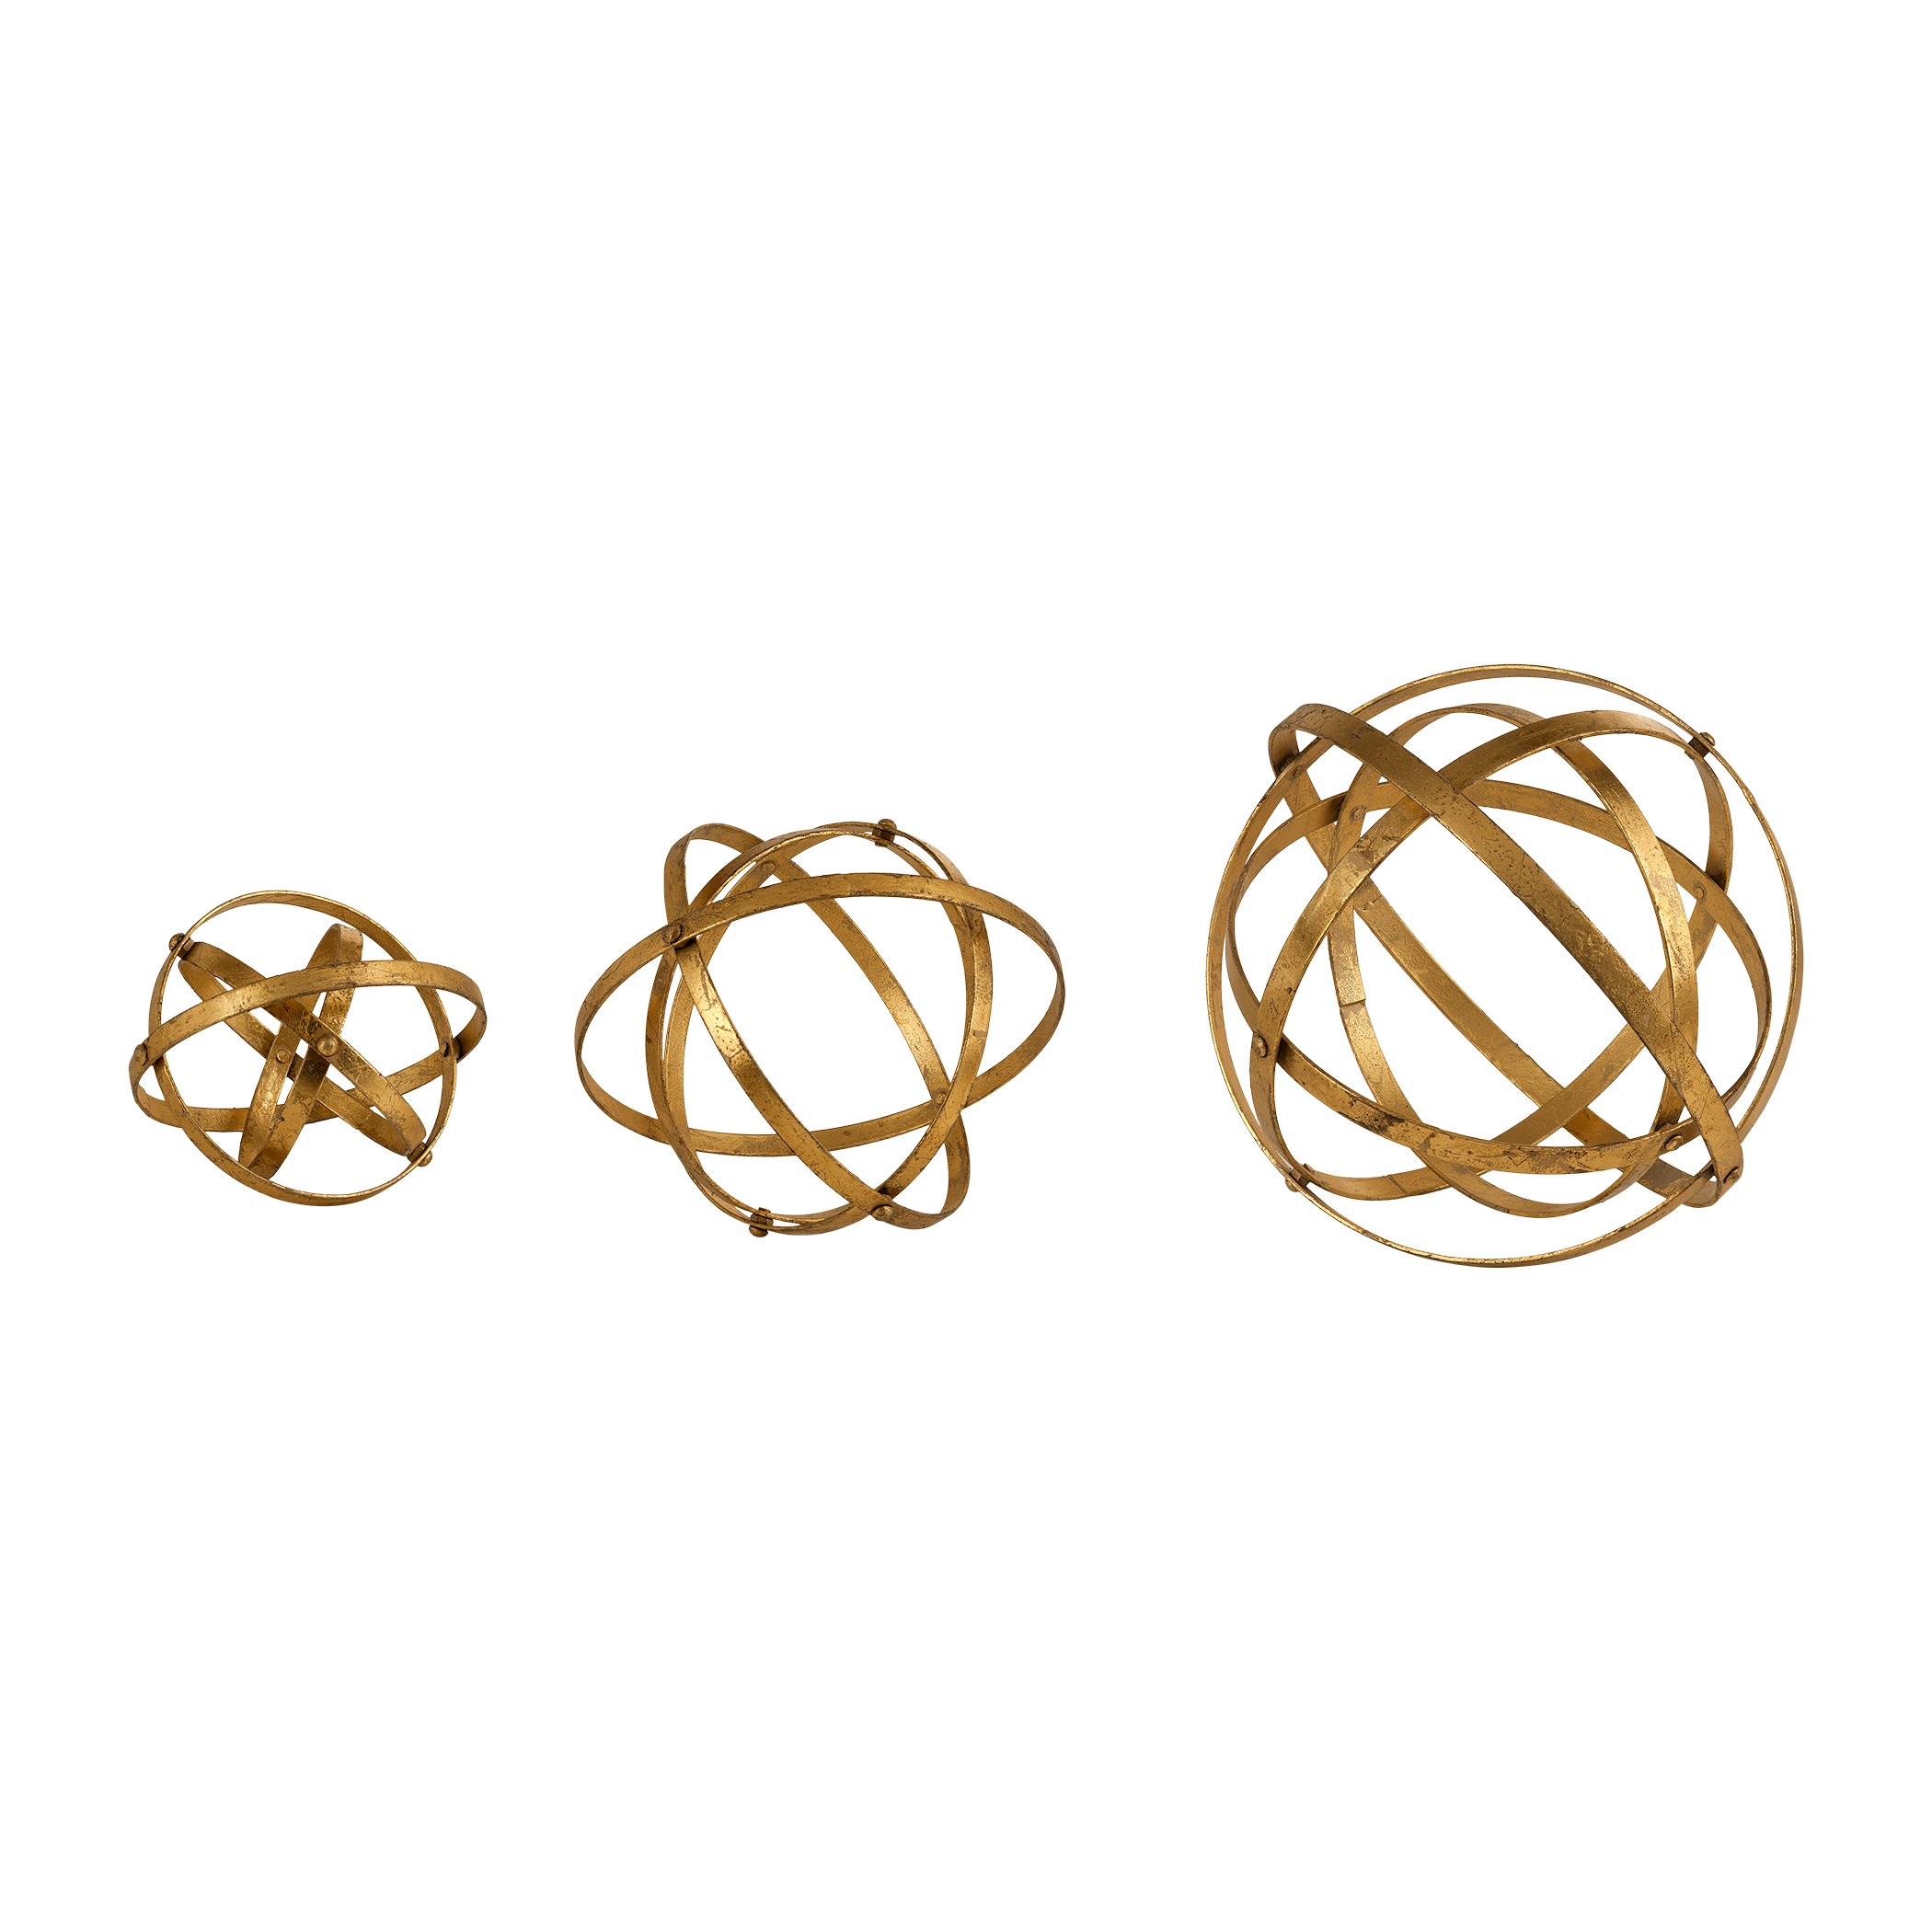 Uttermost Accessories Stetson Gold Spheres, S/3 - Item Number: 20066